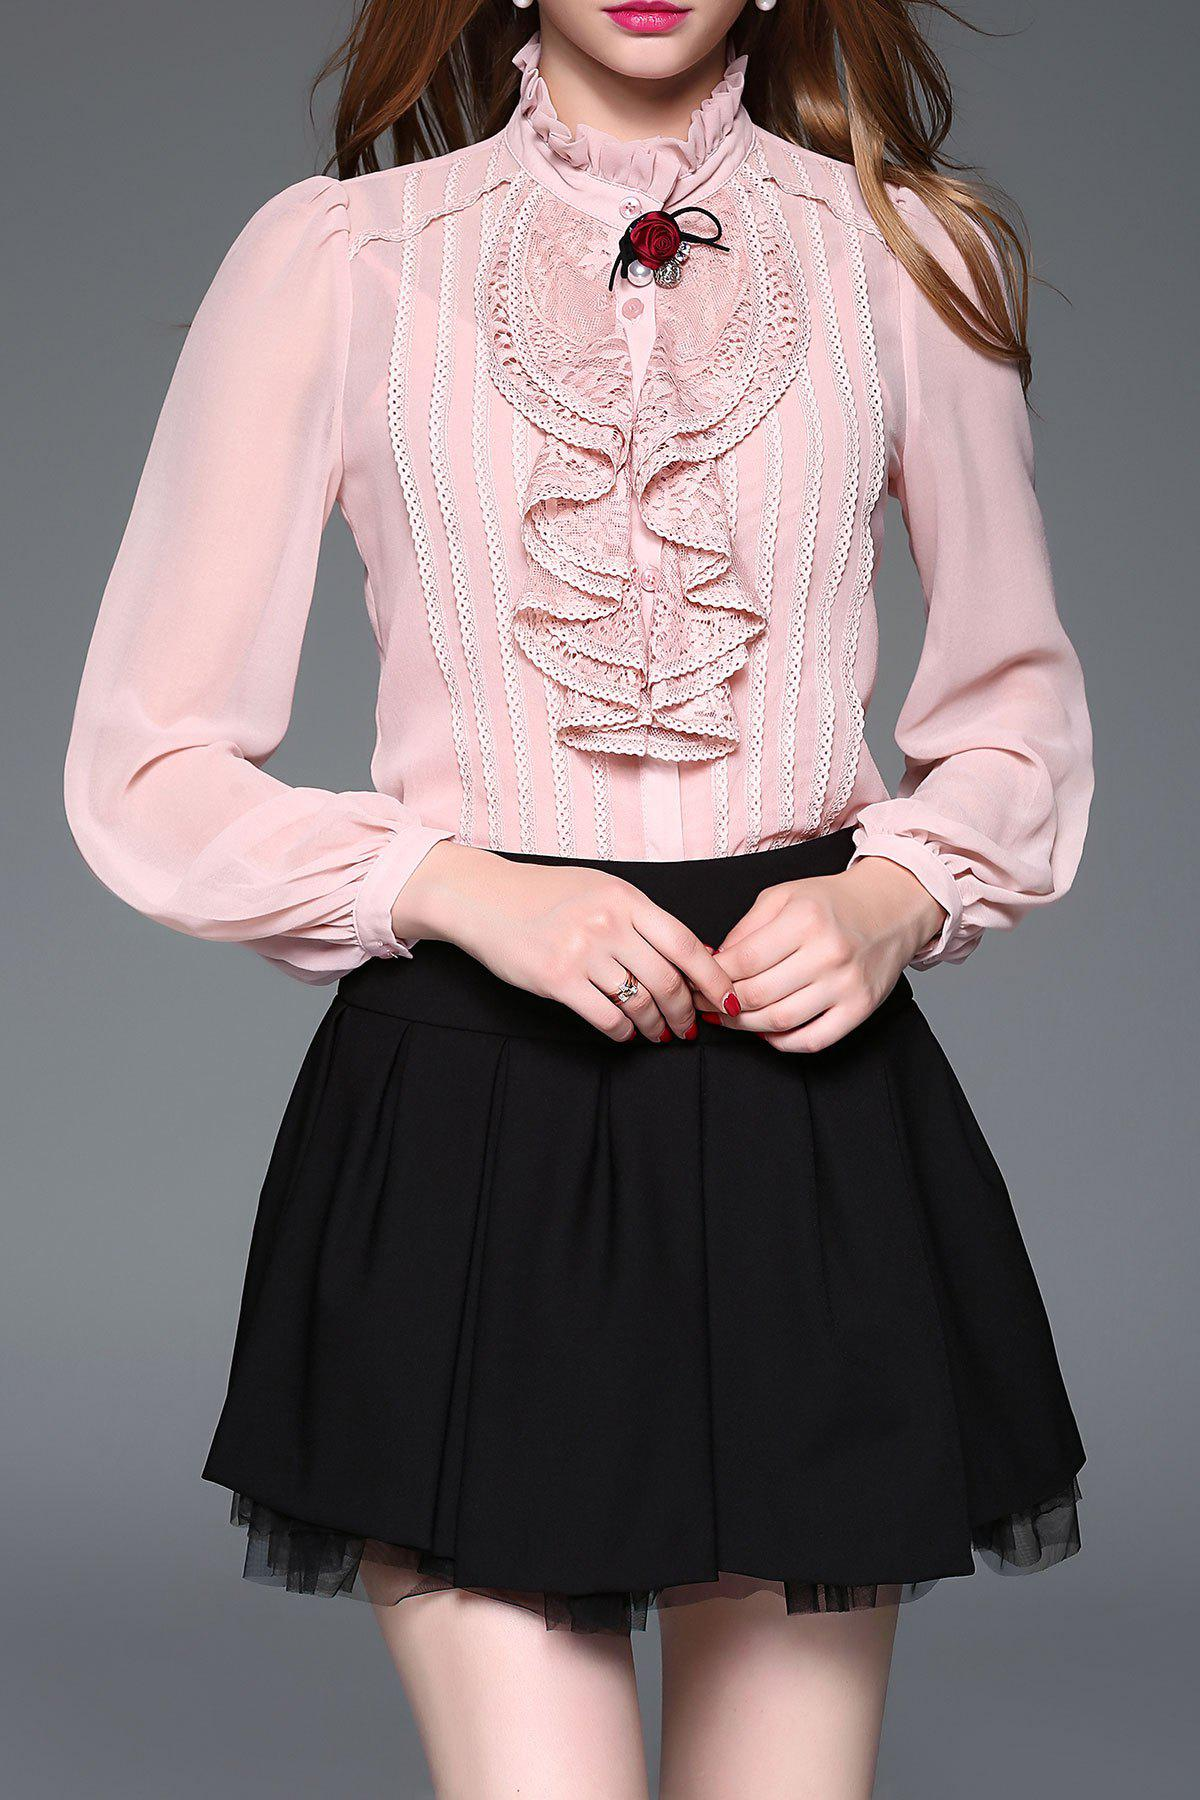 Lace Panel Ruffle Steampunk Blouse with Cami Top - PINK M